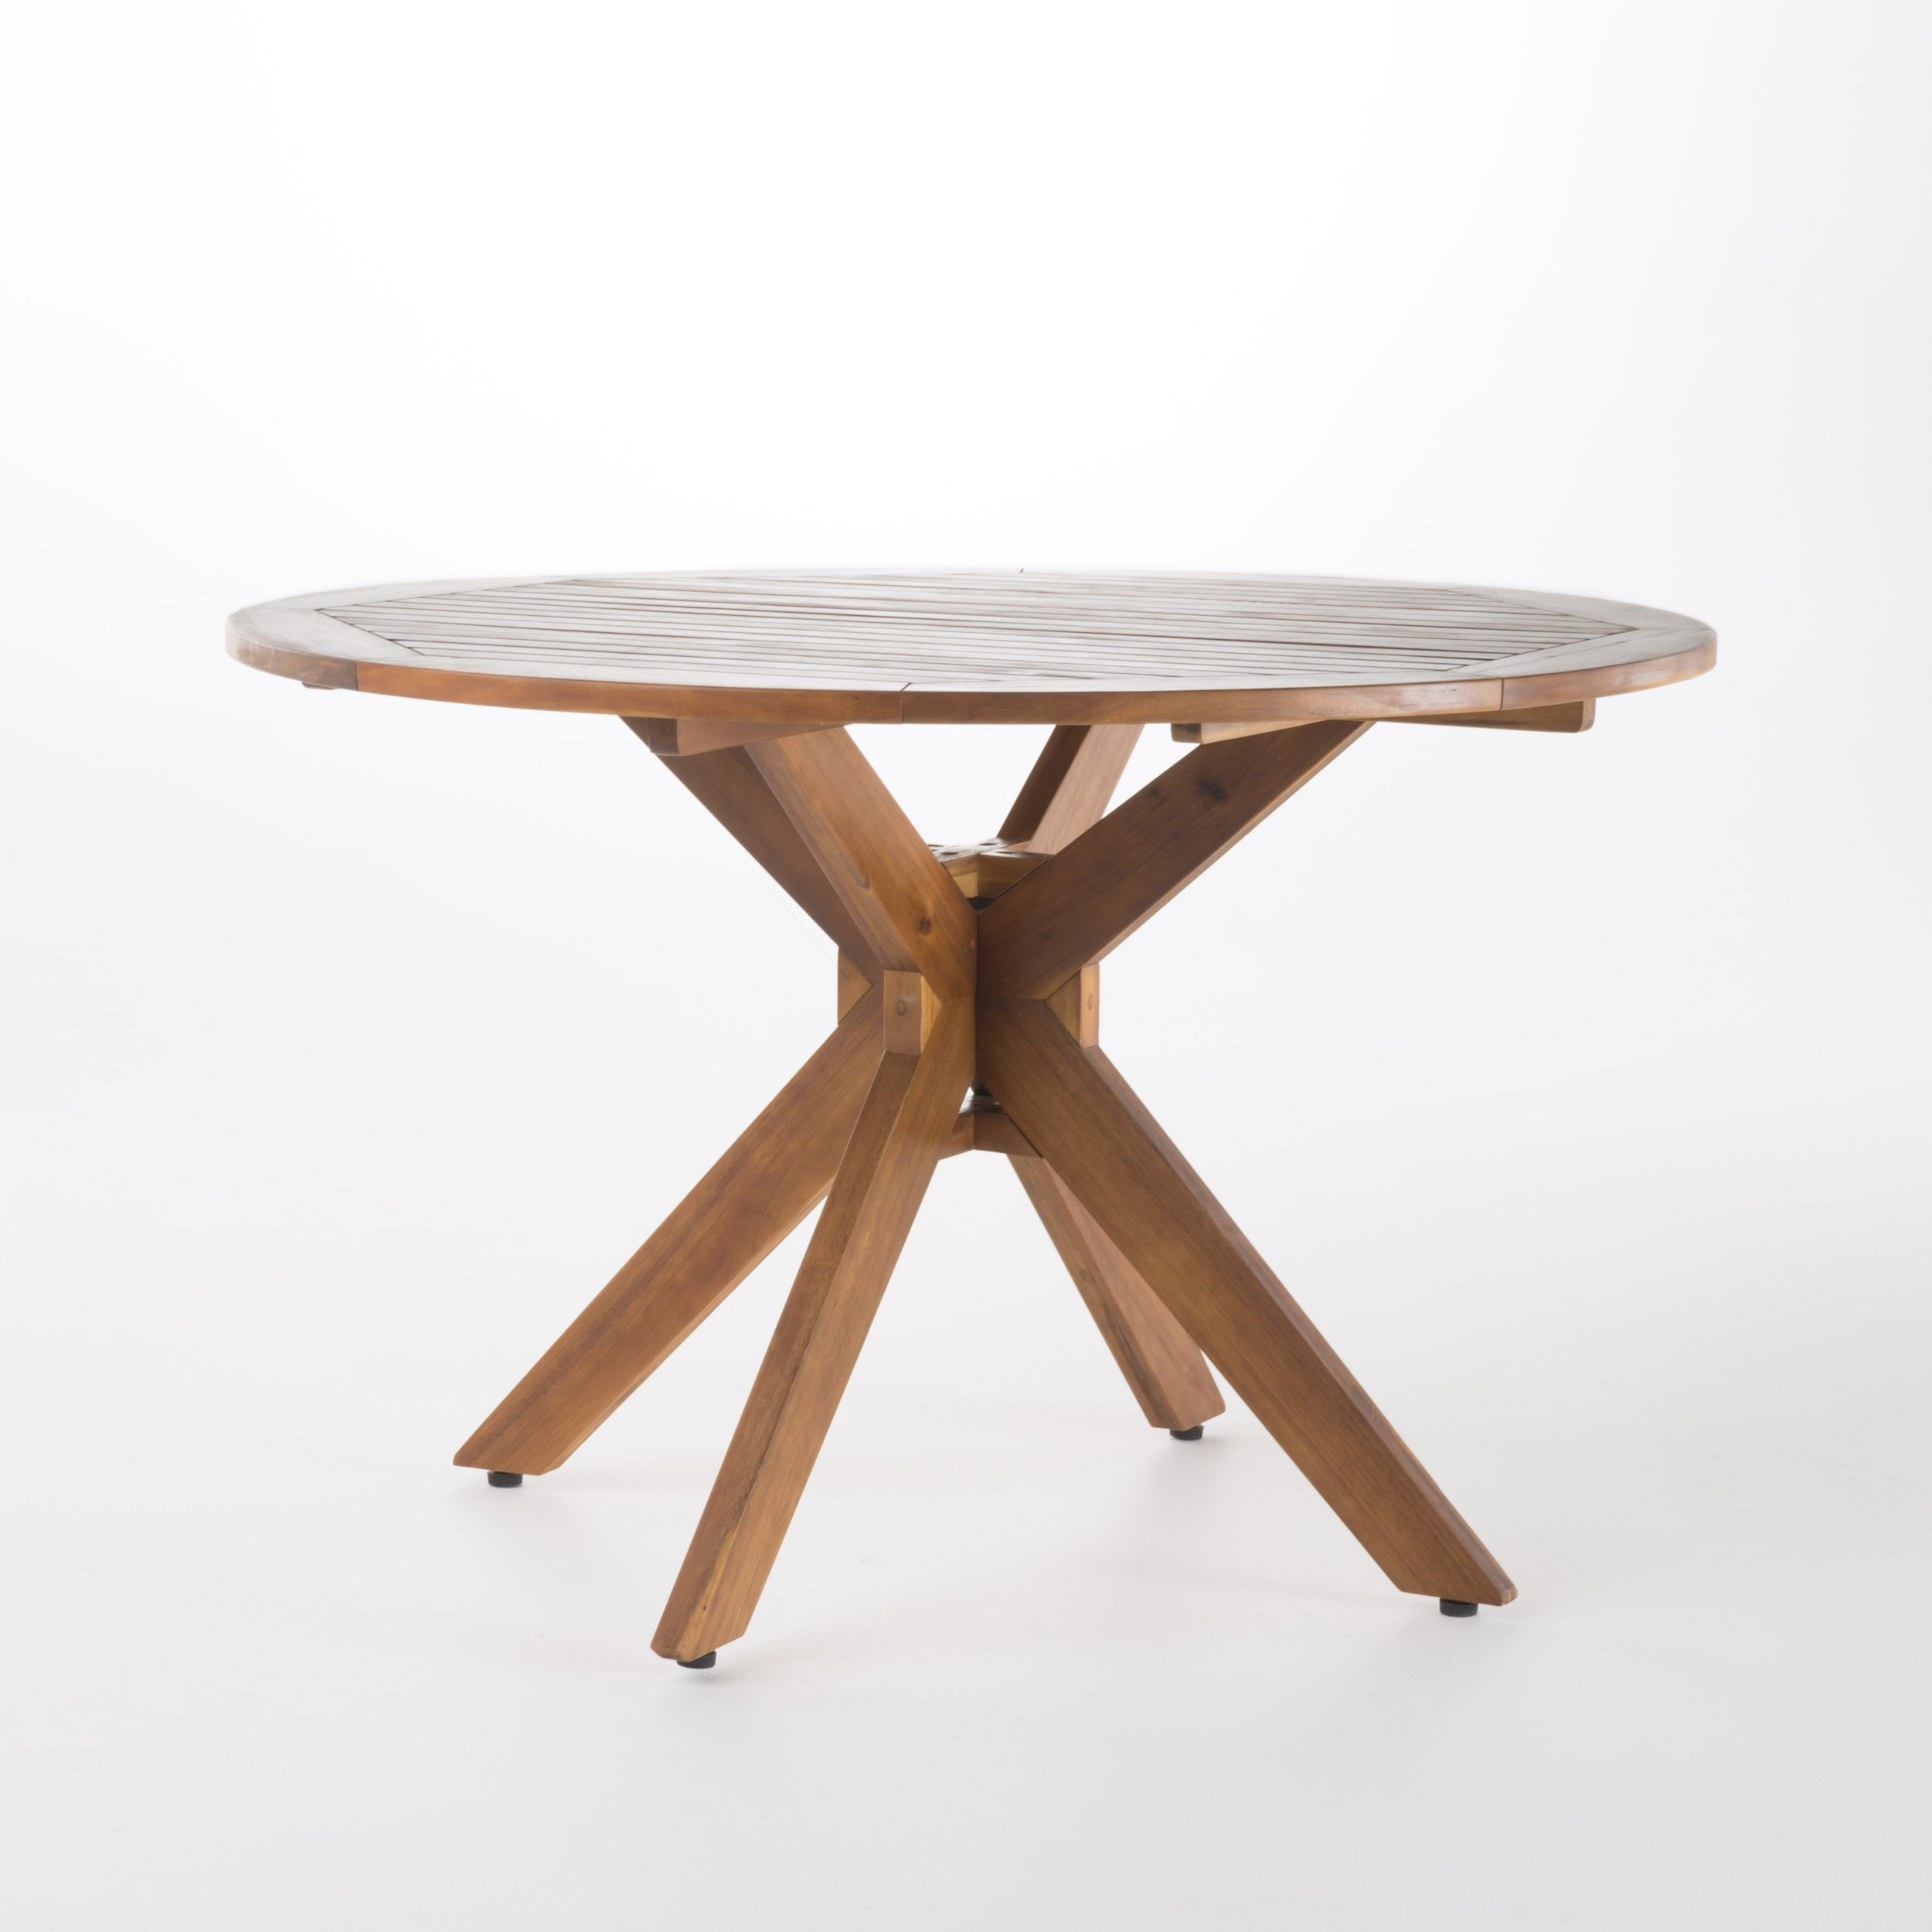 Stanford Outdoor Acacia Wood Round Dining Table, Teak Finish by GDF Studio